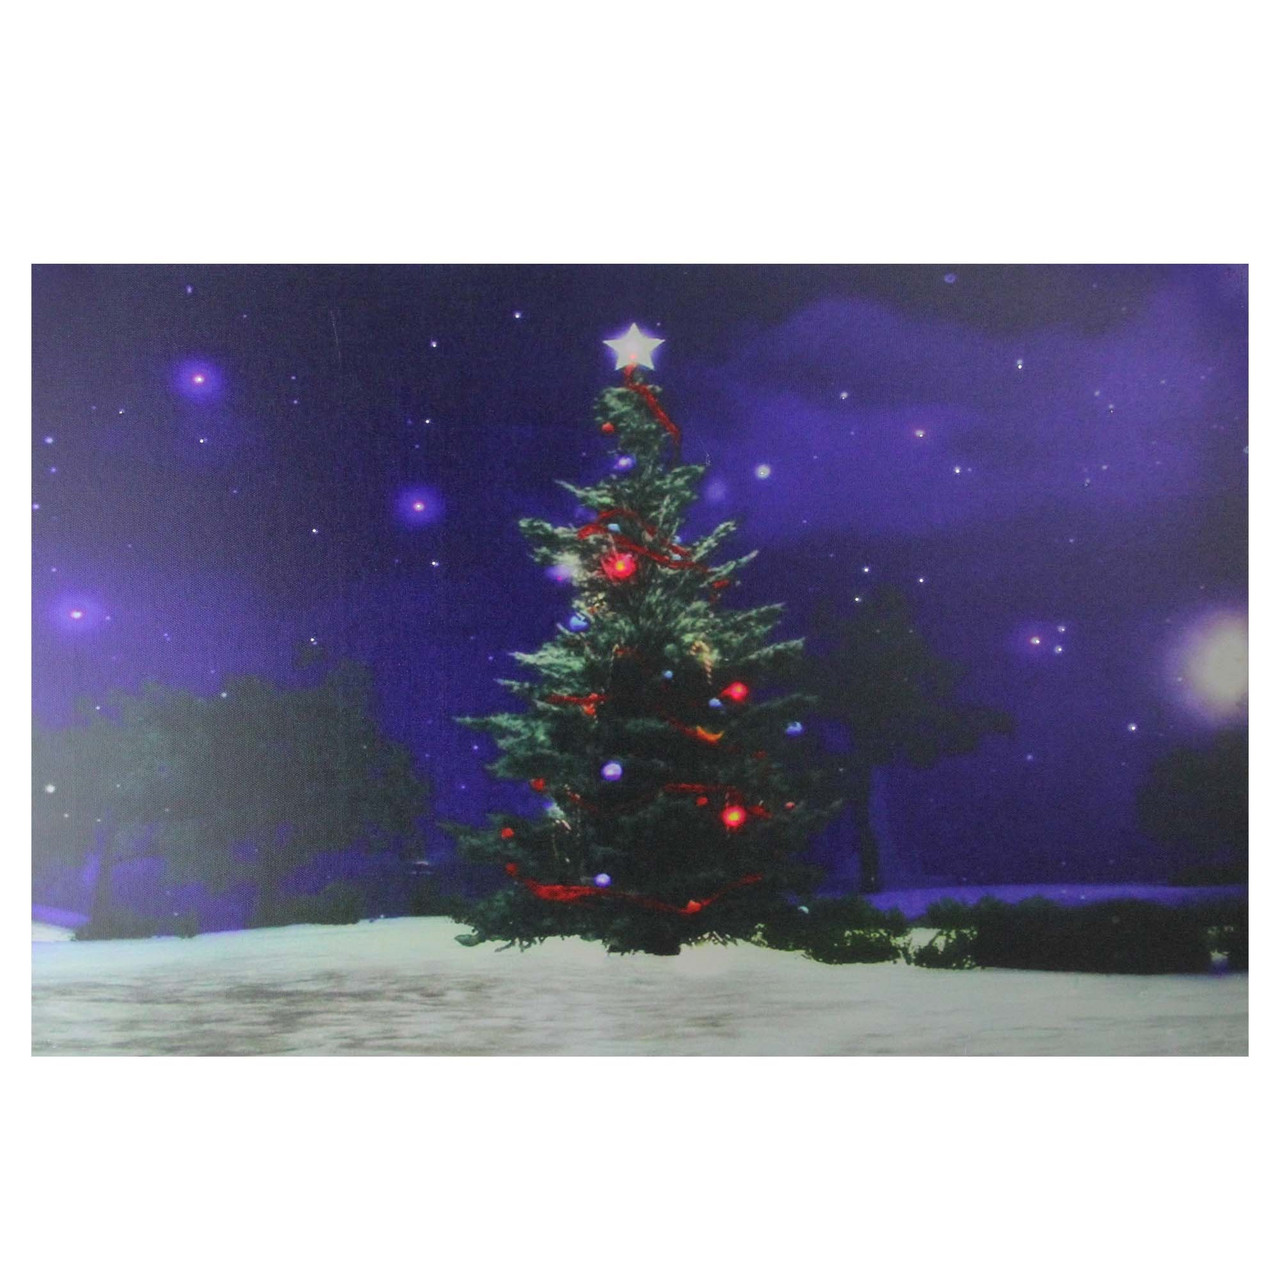 httpscdn6bigcommercecoms km30nn7yimagesste - Color Changing Christmas Tree